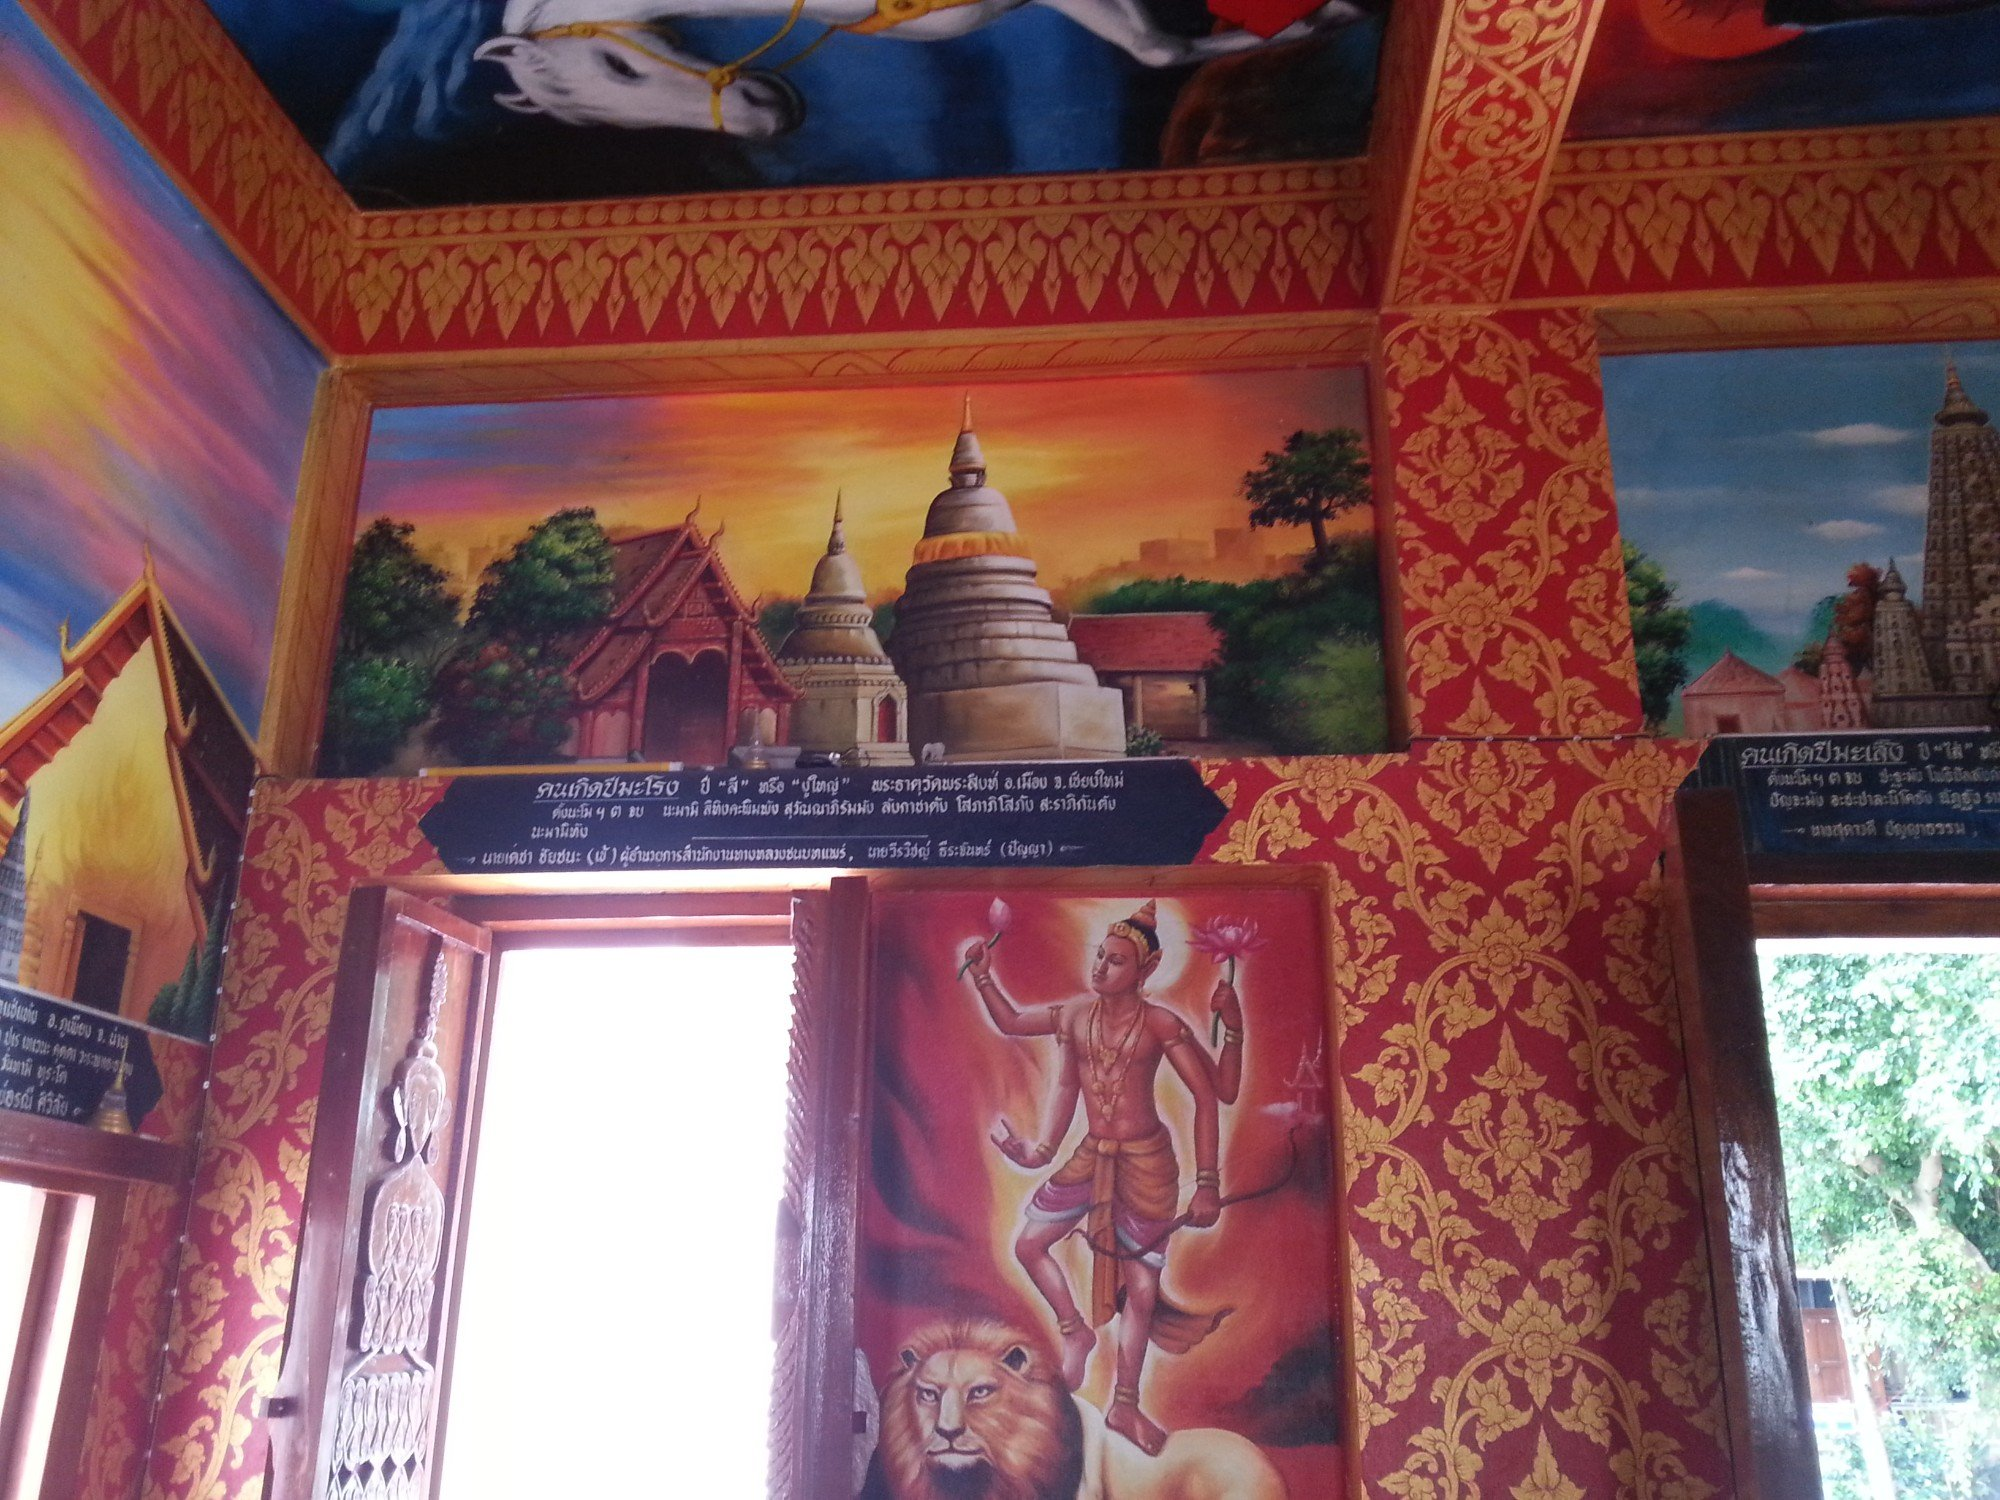 Wall murals at Wat Phong Sunan